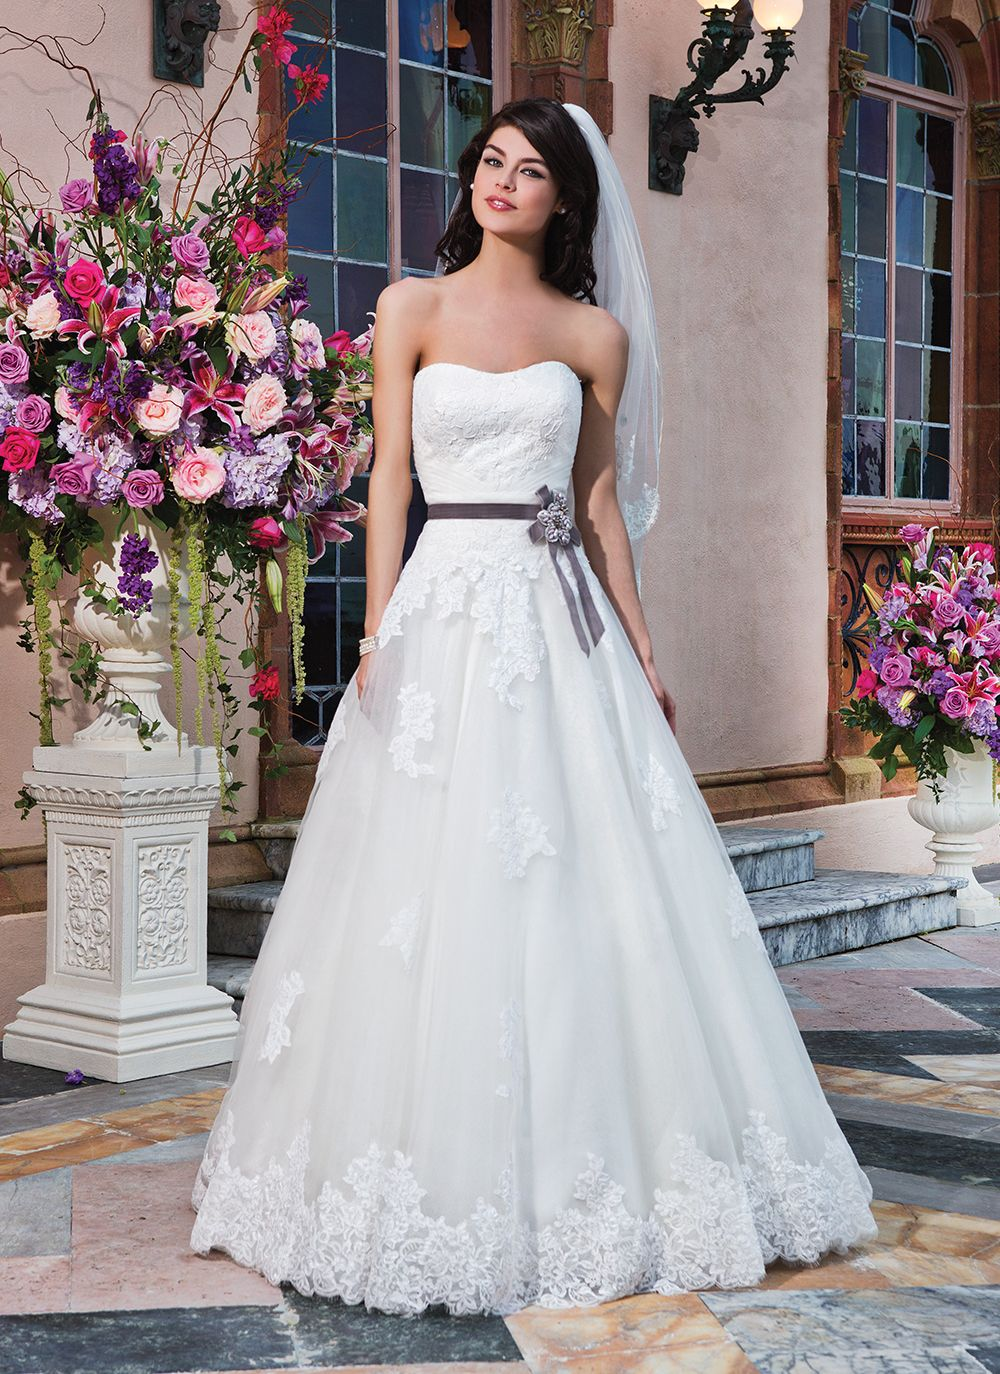 Sincerity wedding dress style 3832   Tulle, alencon lace ball gown complemented with a strapless neckline